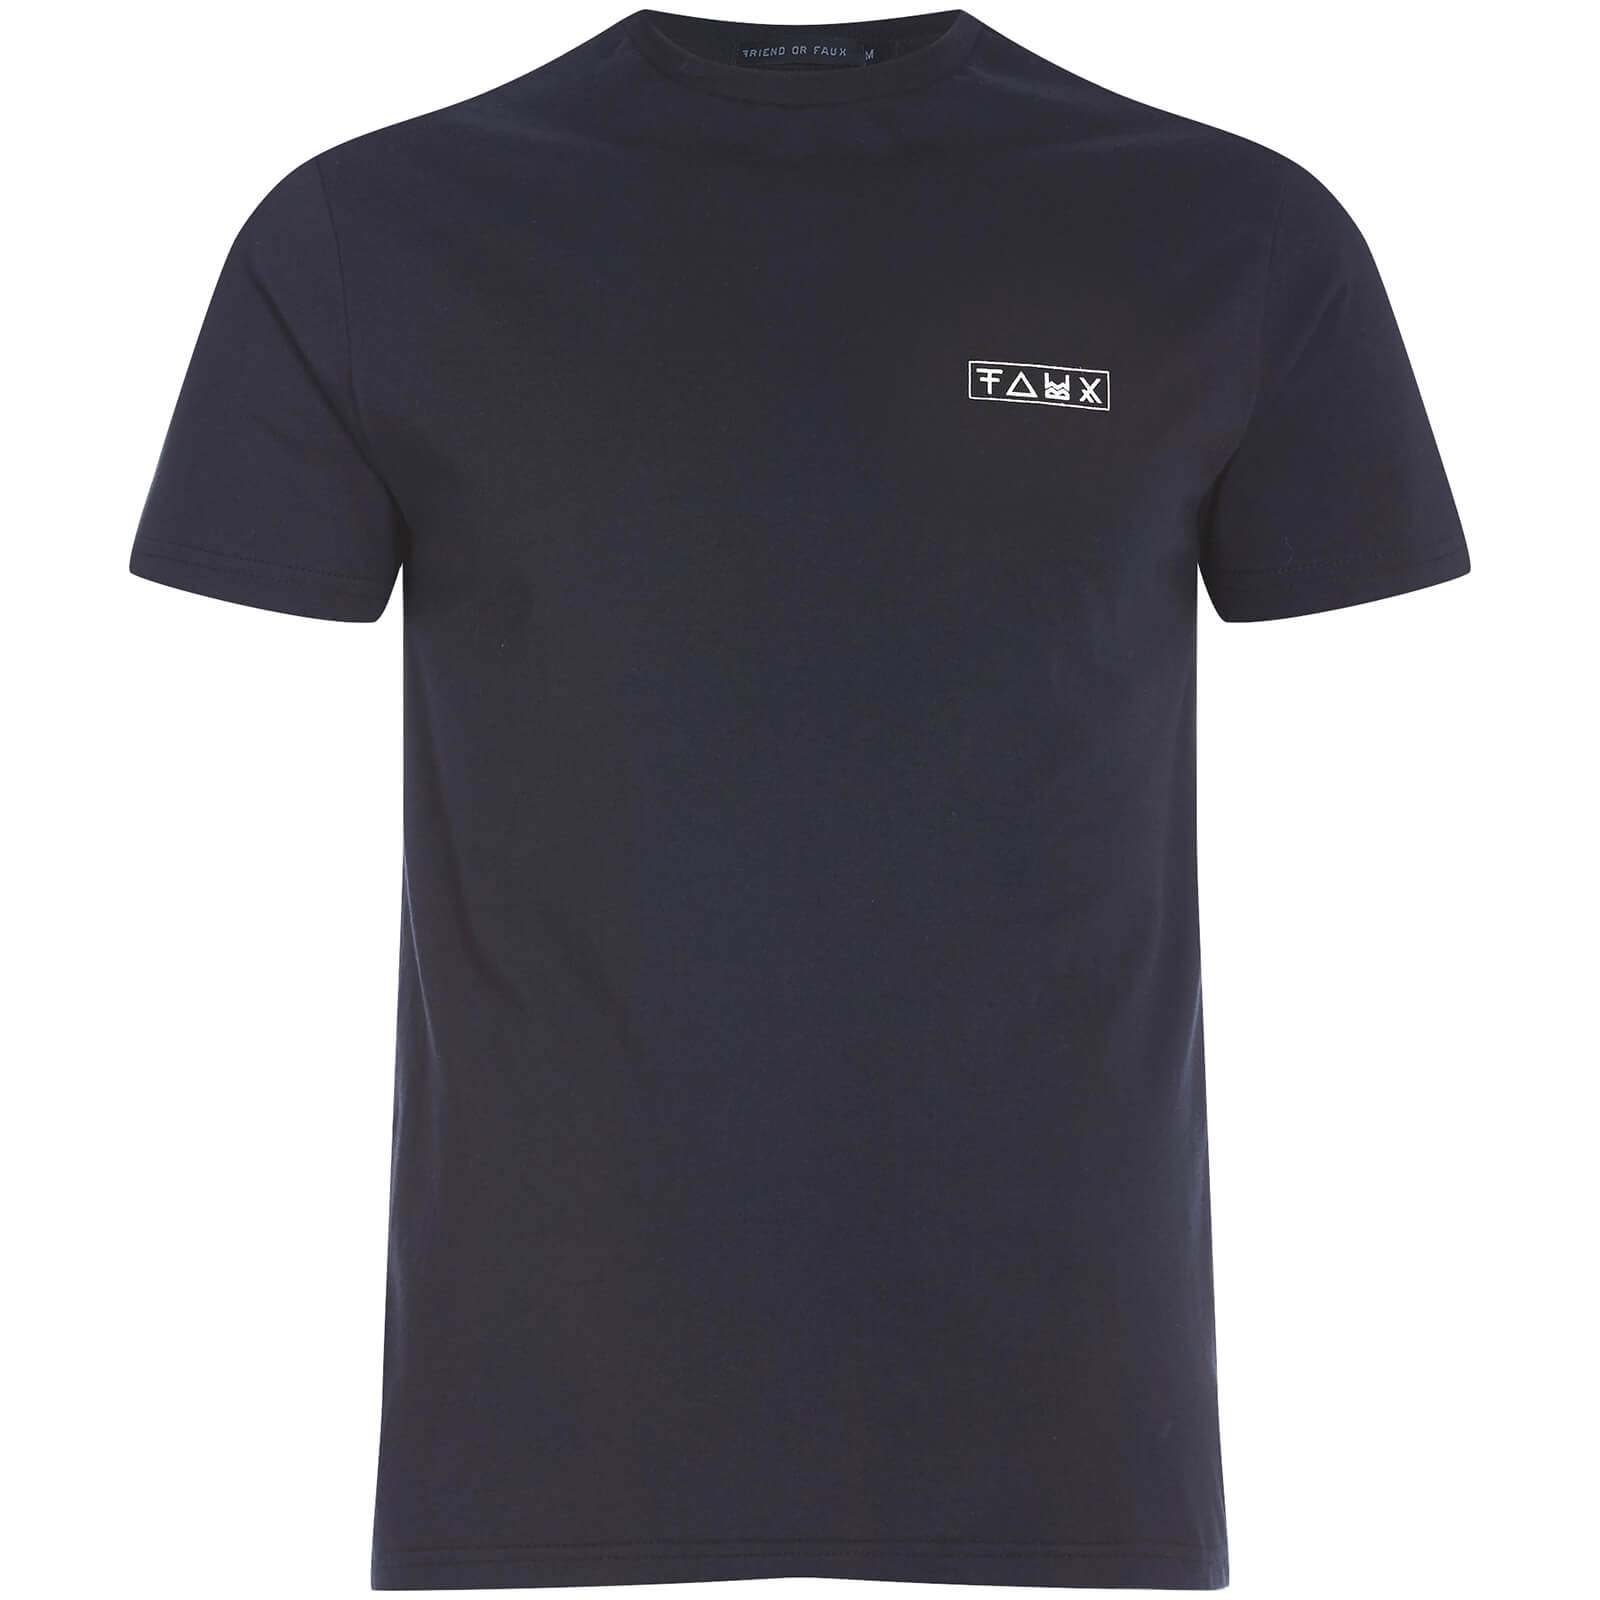 T-Shirt Homme Limitless Friend or Faux -Bleu Marine